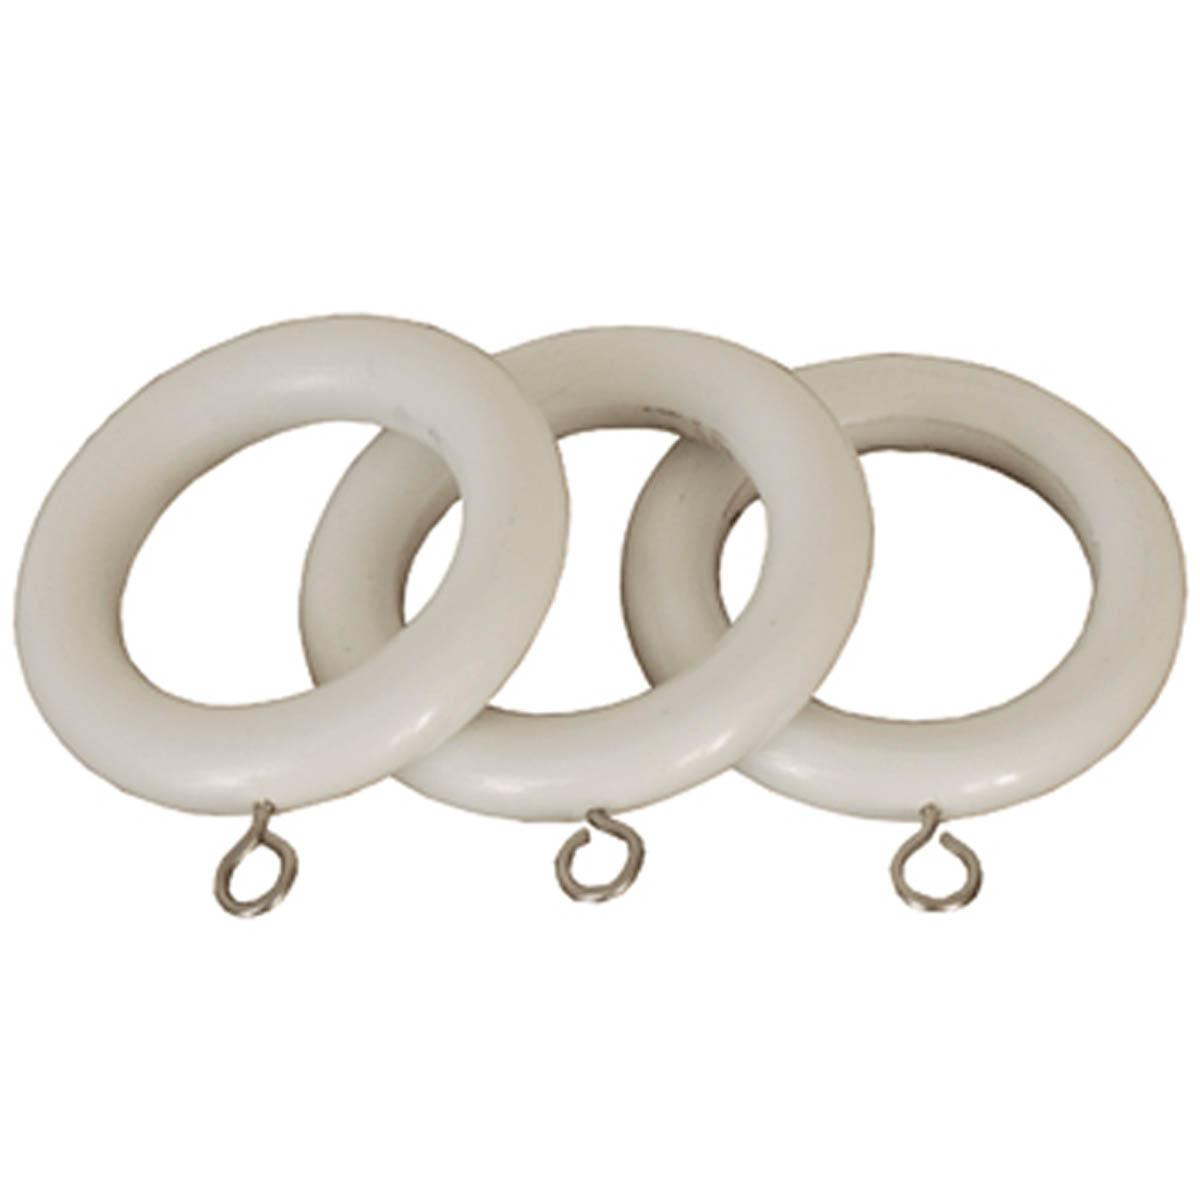 White curtain rings with clips - Curtain Rings White County 28mm Wooden Curtain Rings